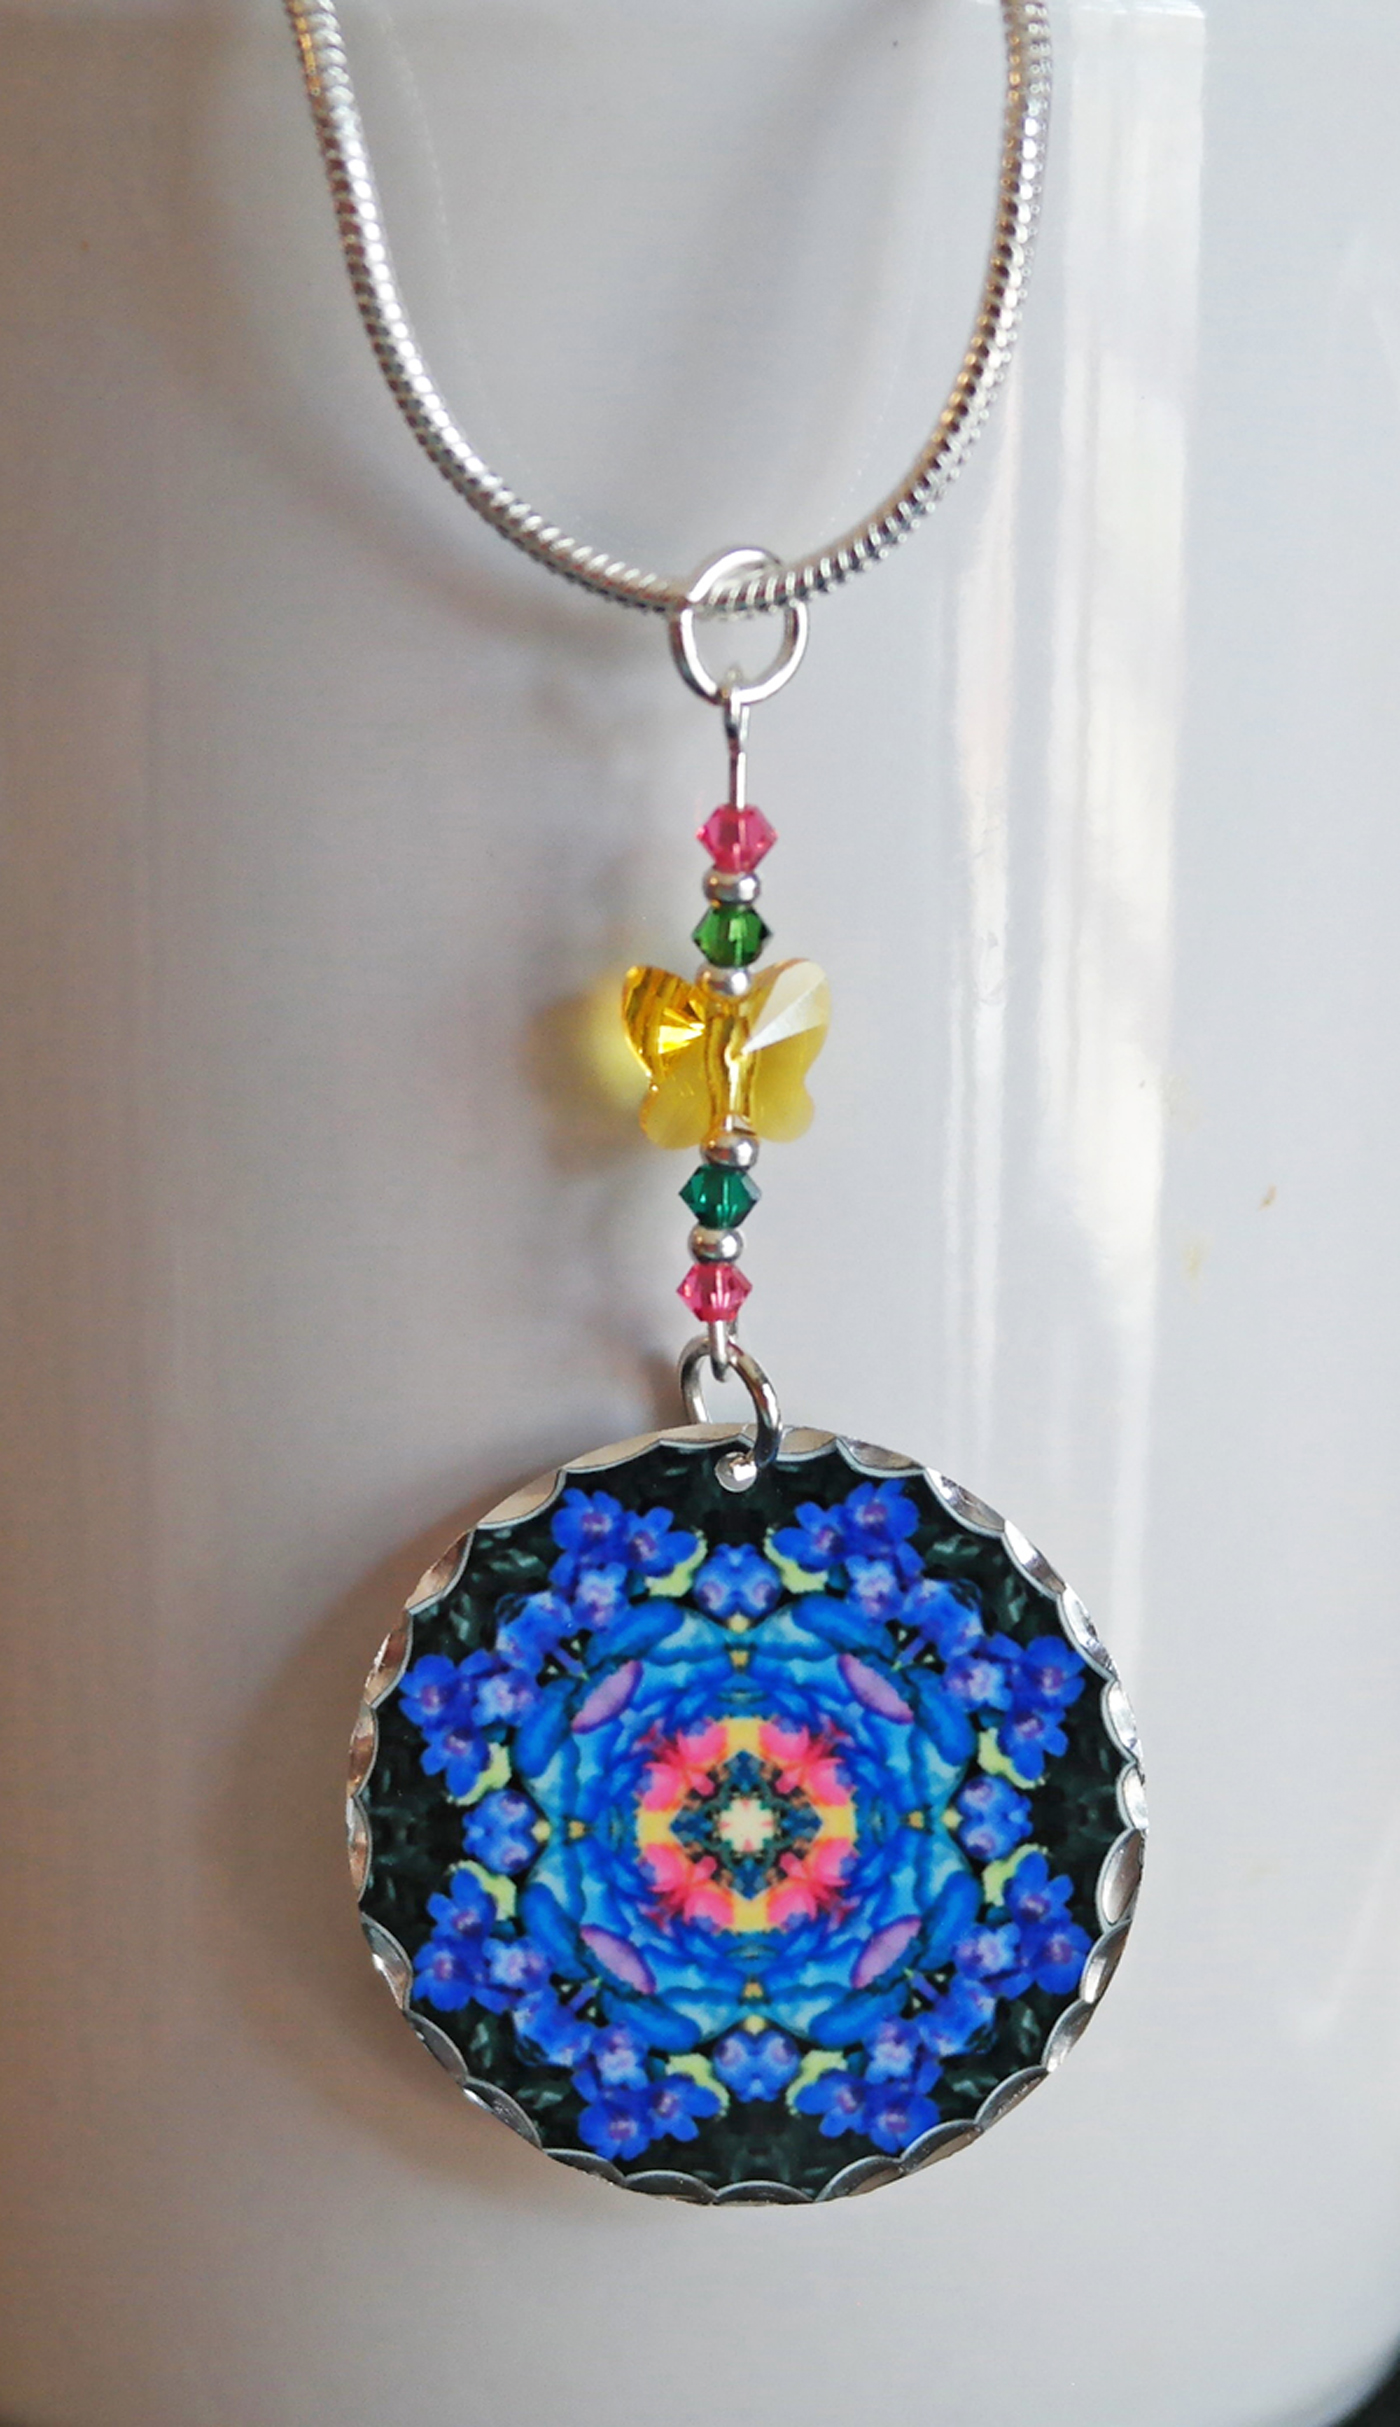 Rose Mandala Pendant Charm Boho Chic New Age Sacred Geometry Hippie Unique Gift For Her Kaleidoscope Kaleidoscopic Symphony